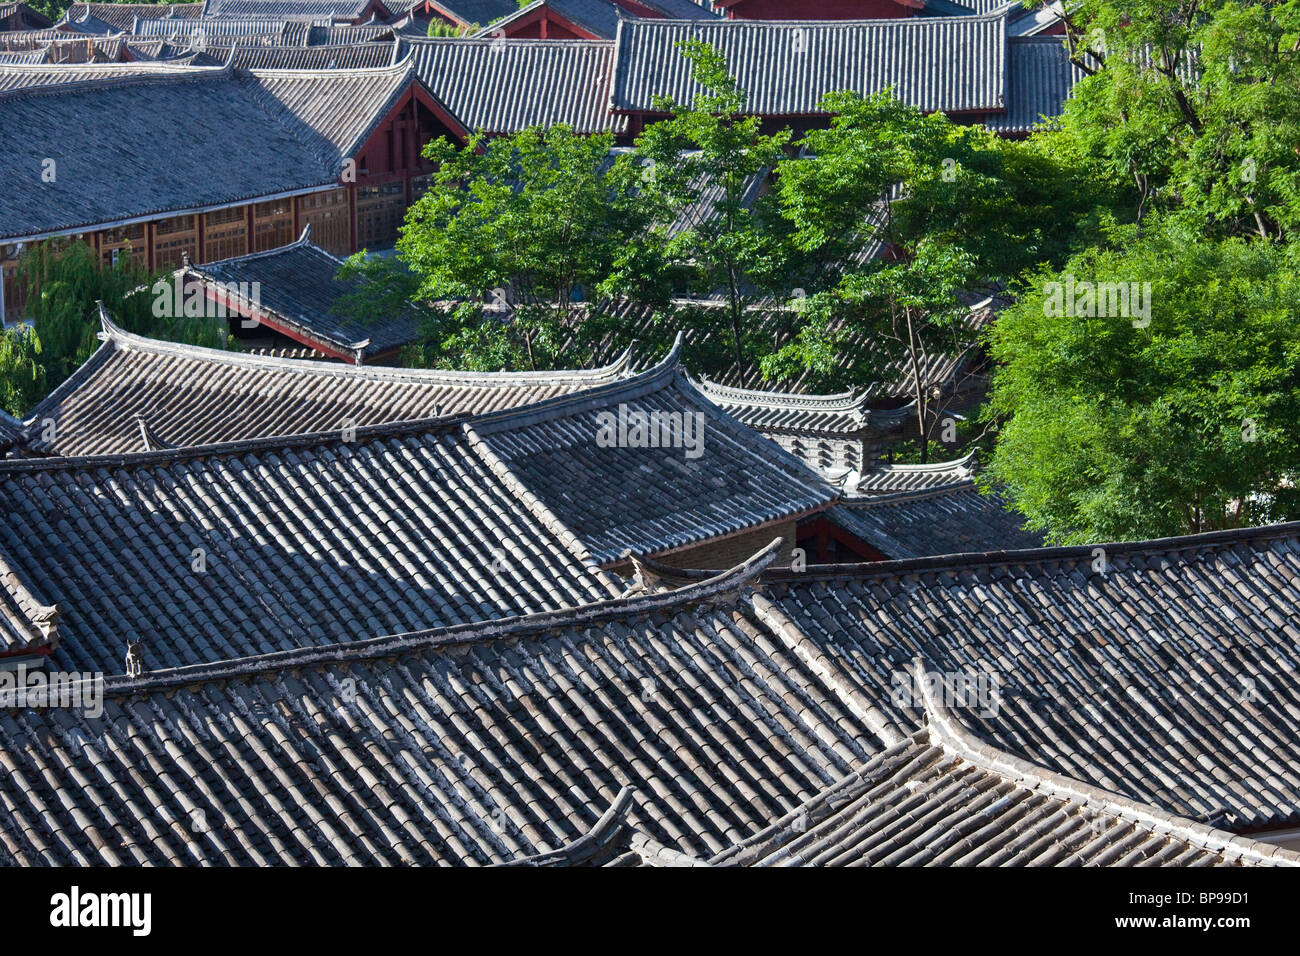 Rooftop view of the old town in Lijiang, Yunnan Province, China - Stock Image